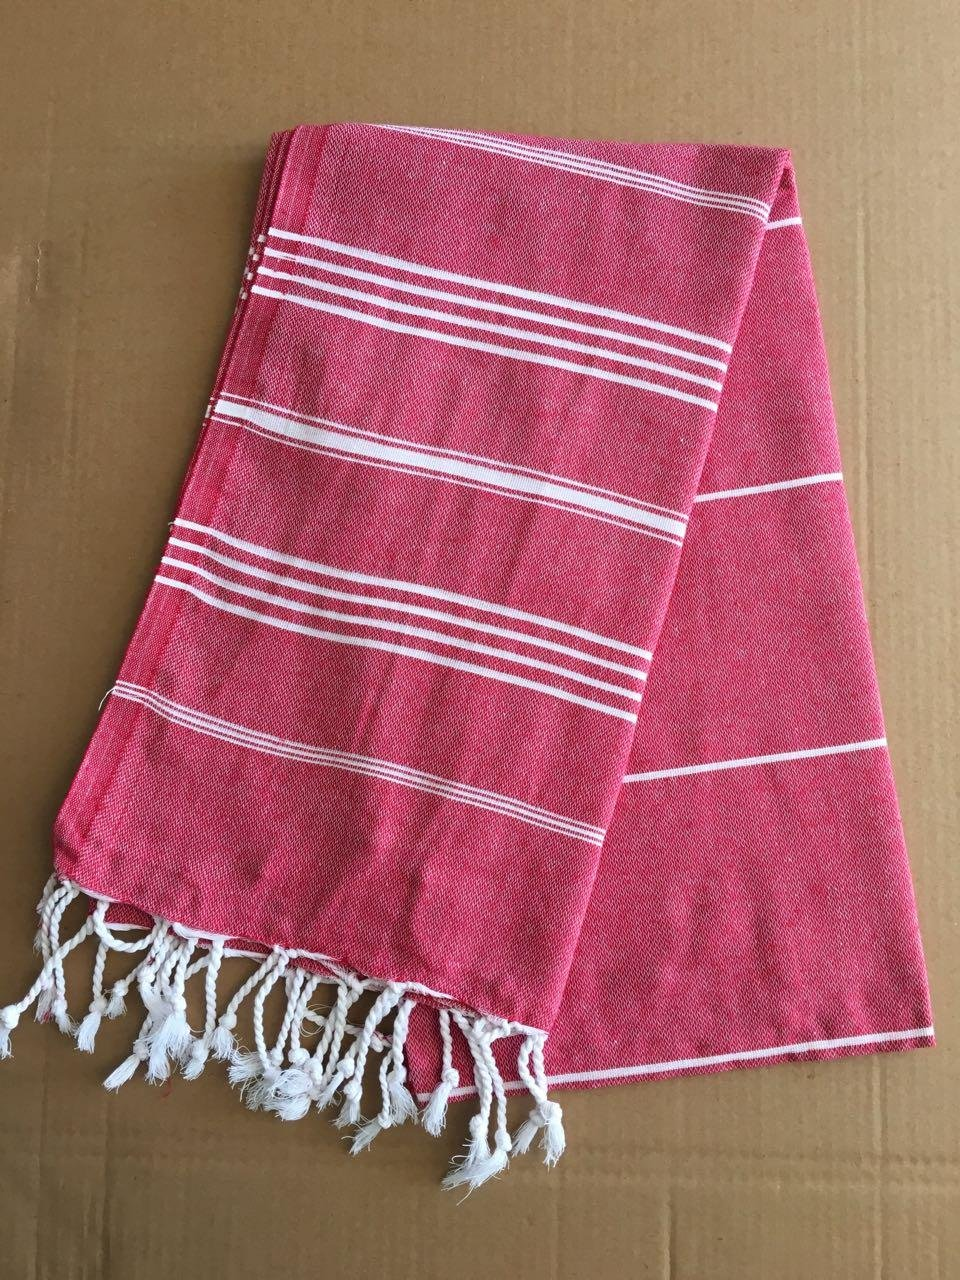 "Paramus Turkish Towel Peshtemal in 100% Cotton for Beach Bath Swimming Pool Yoga Pilates Picnic Blanket Scarf Wrap Hammam Fouta Turkish Bath Towels Beach Towel (37x""70) (red) - 100% COTTON Made in Turkey 95x175 cm (""37x70"" inches) - bathroom-linens, bathroom, bath-towels - 81cQY57wrGL -"